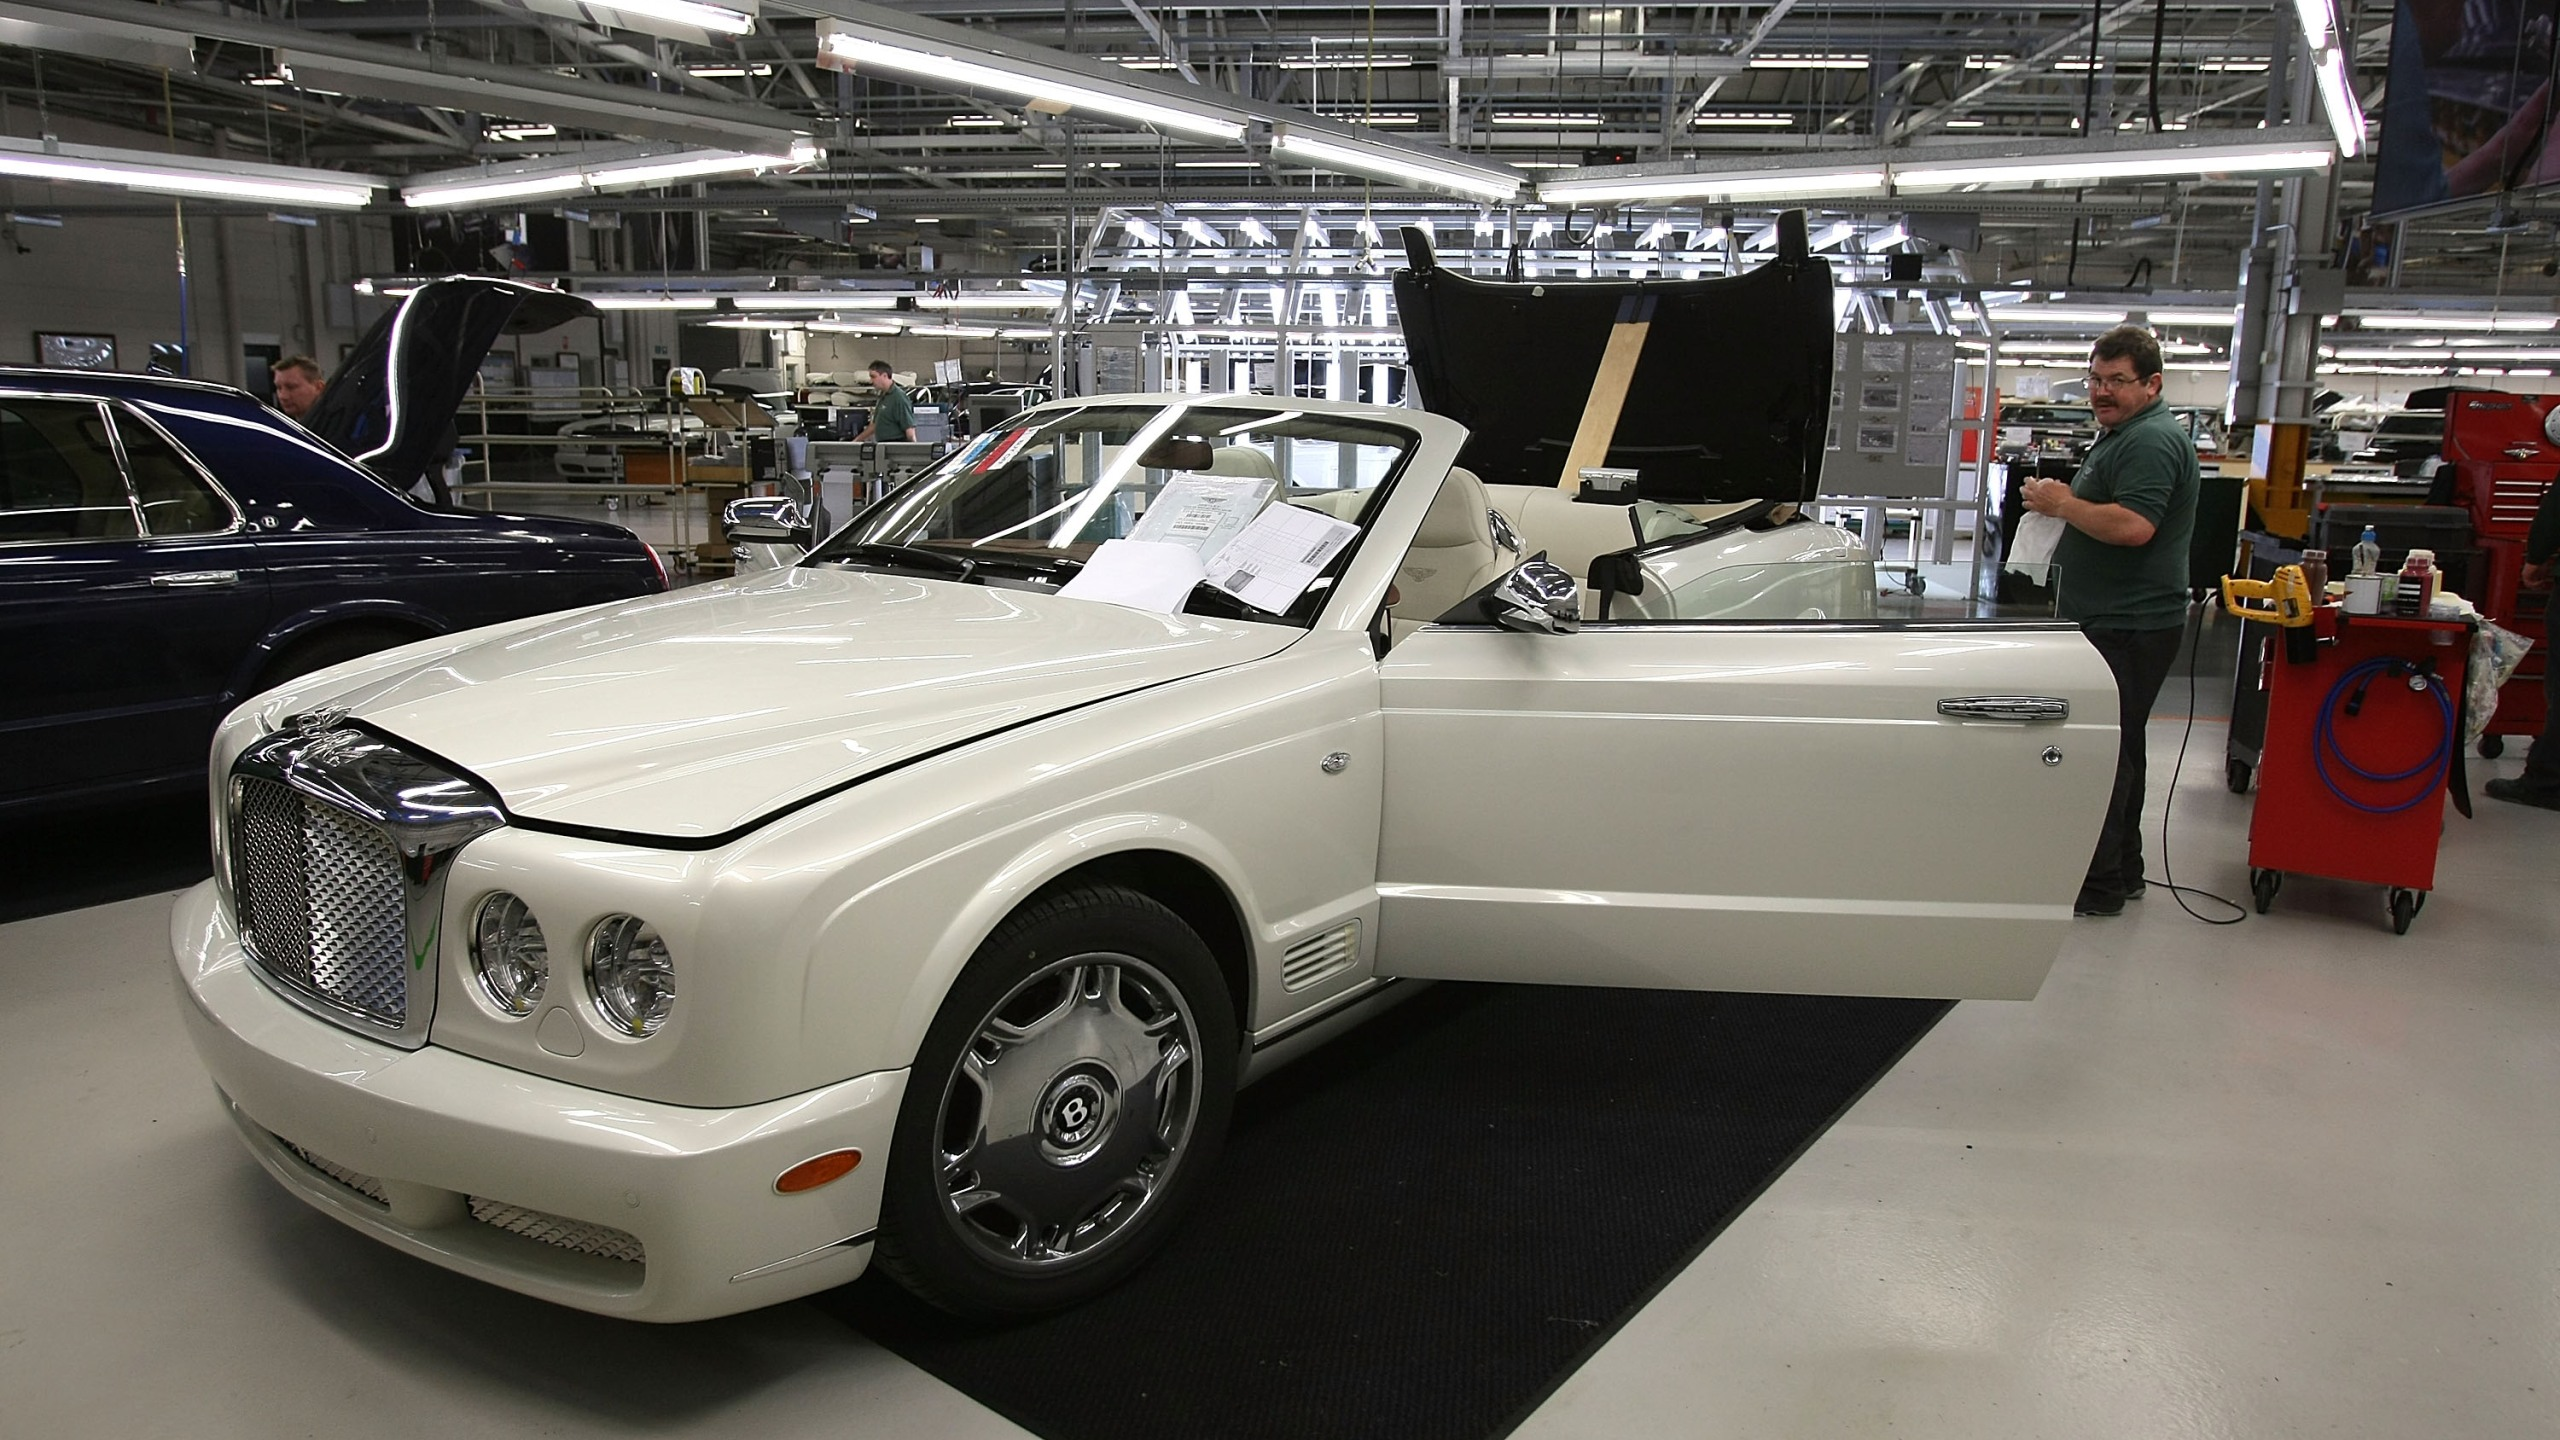 A Bentley undergoes final preparation and inspection in the Mulliner workshop at the Bentley Motors Factory on 19 November, 2007, in Crewe, England. (Christopher Furlong/Getty Images)